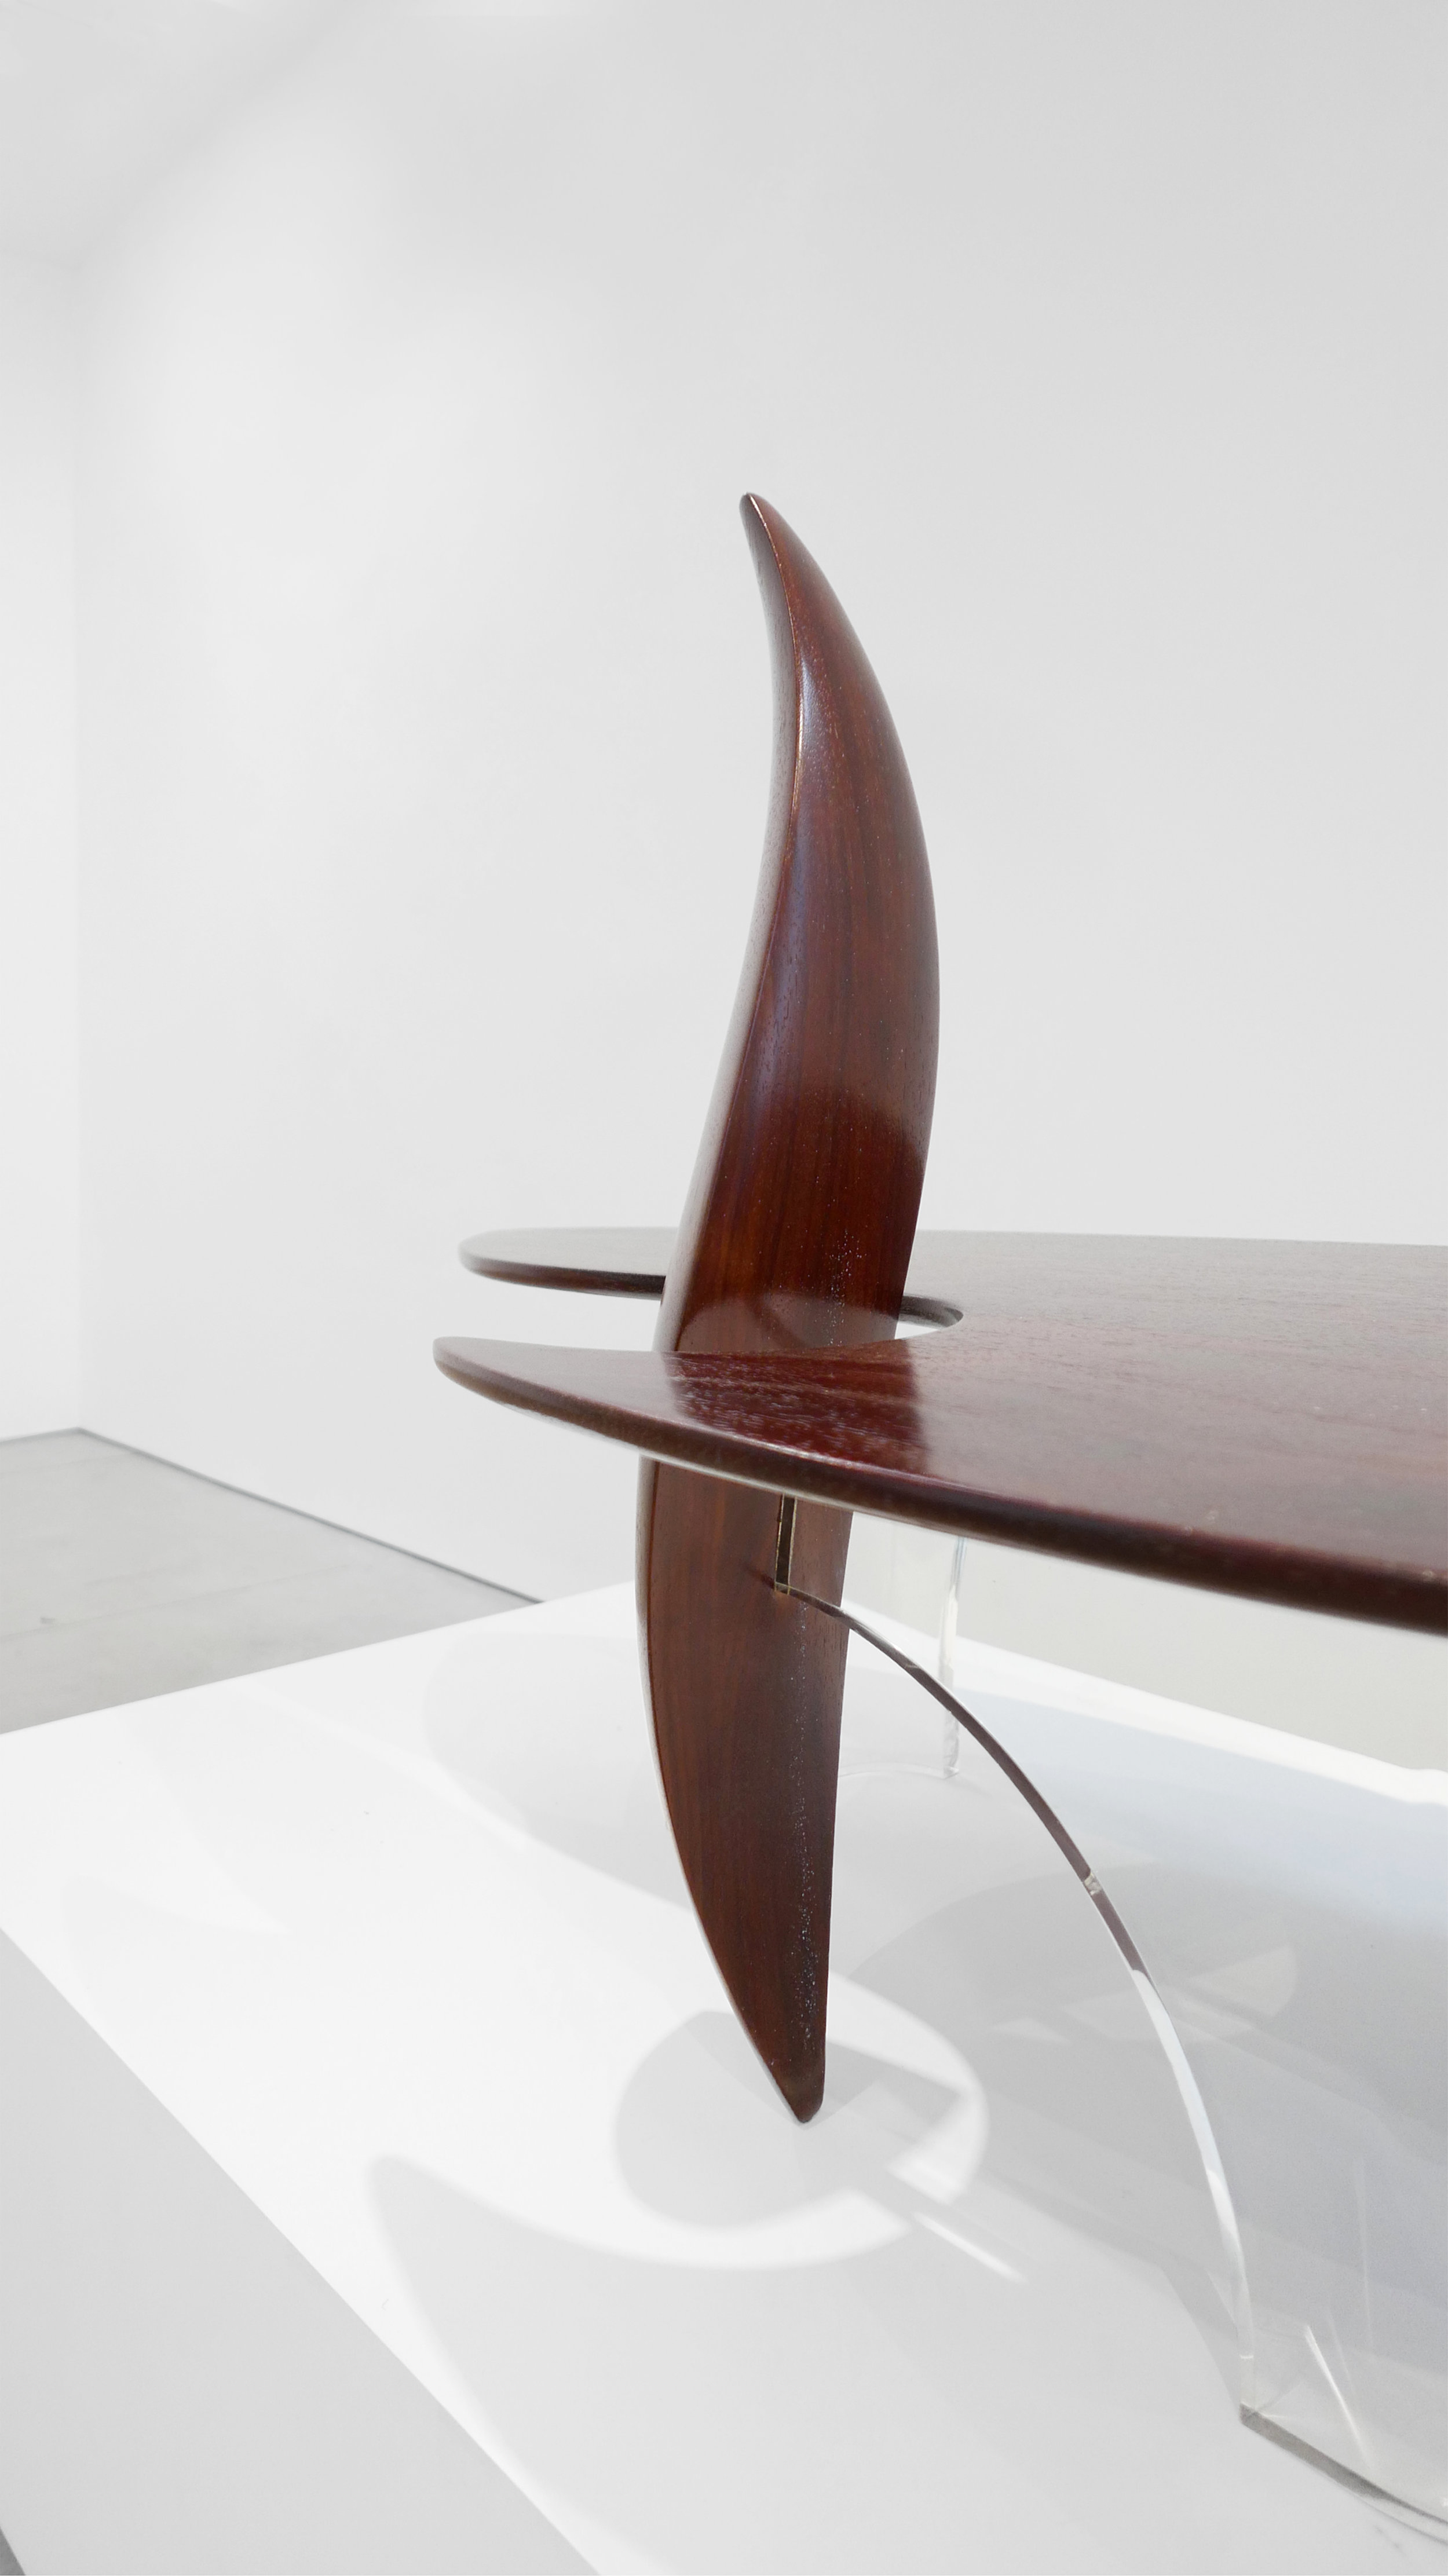 8. Michael Coffey, 'Encounter' Coffee Table, c. 1979, lucite, wood, 35H x 60W x 29D inches.jpg